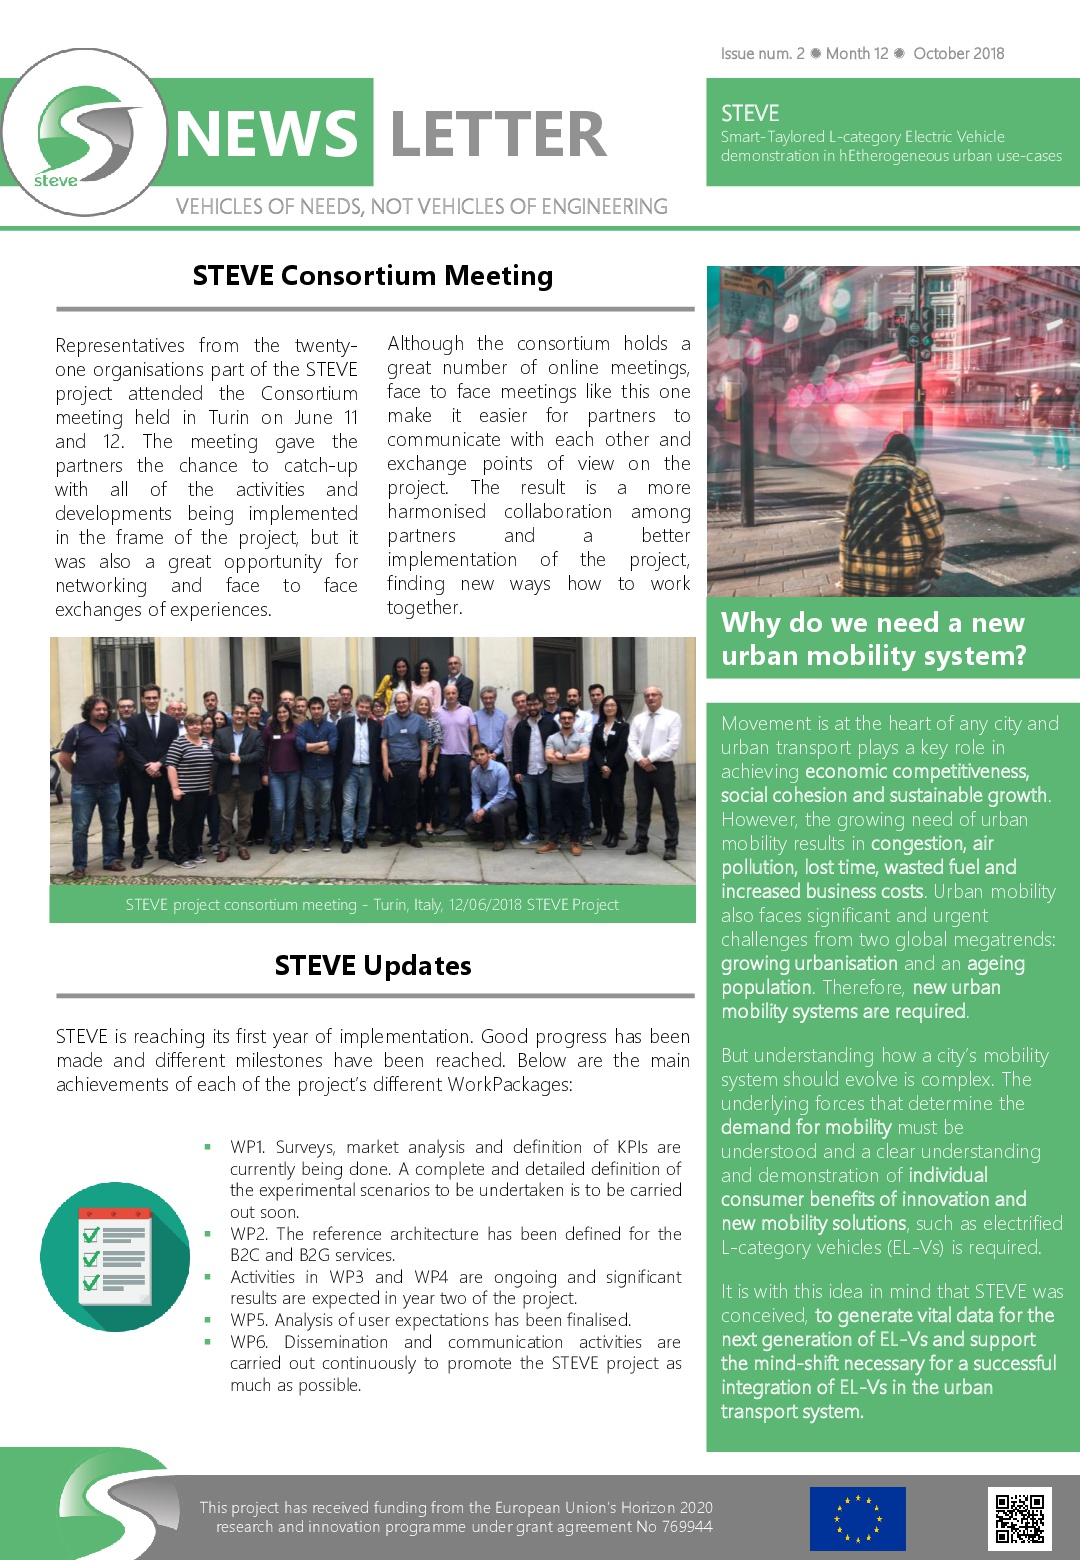 Second STEVE Newsletter